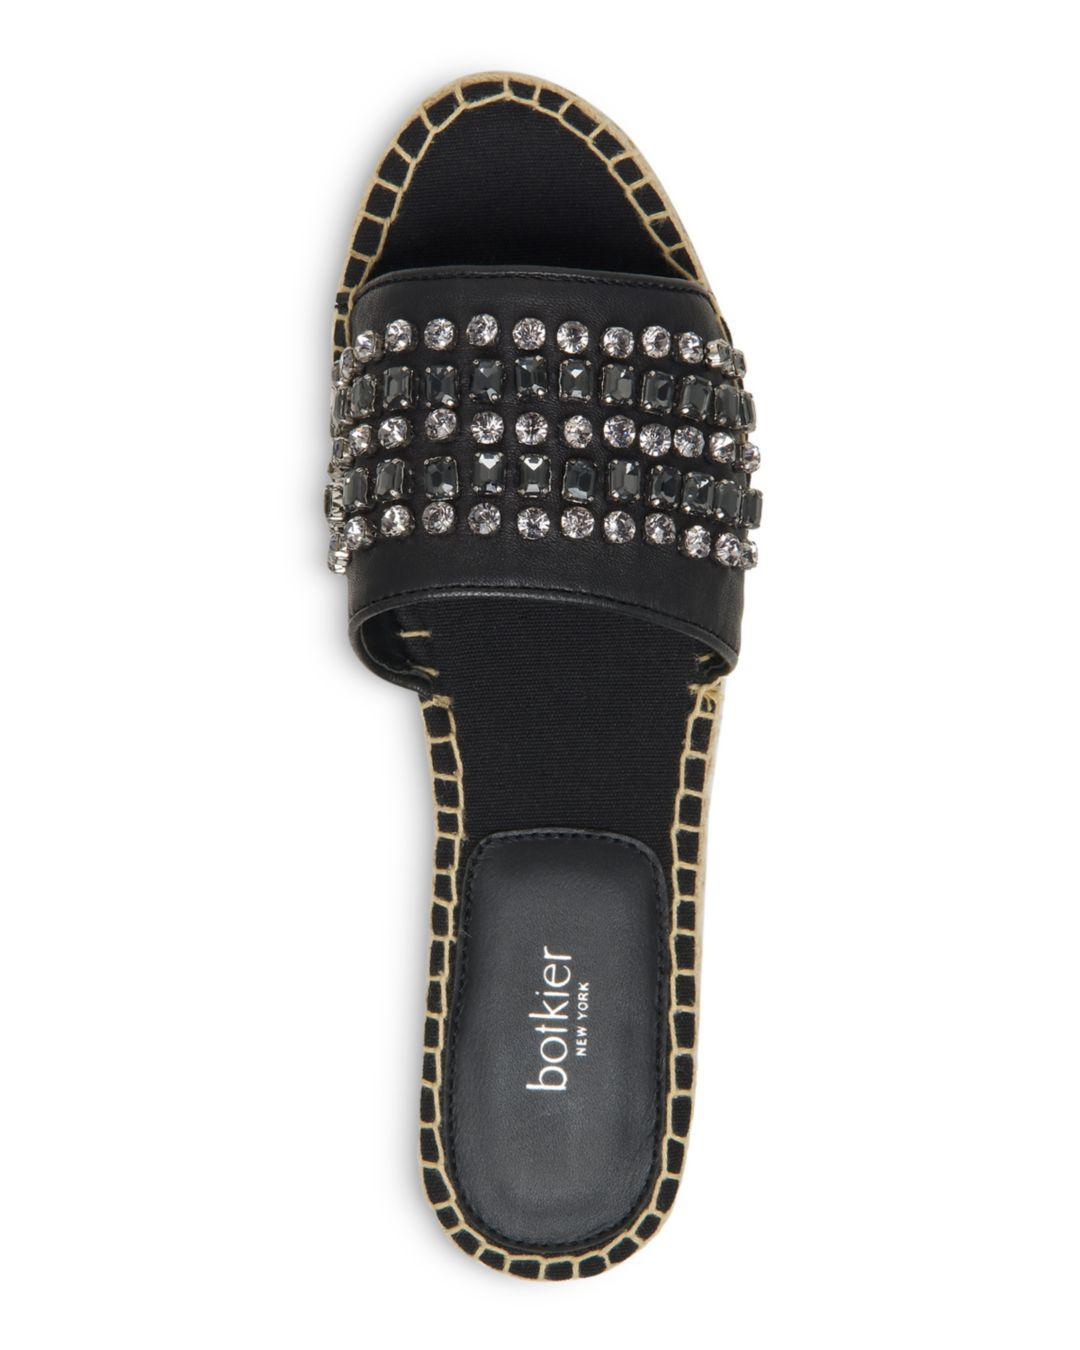 9aa54fa9a Botkier Julie Leather Jeweled Espadrille Sandals in Black - Lyst